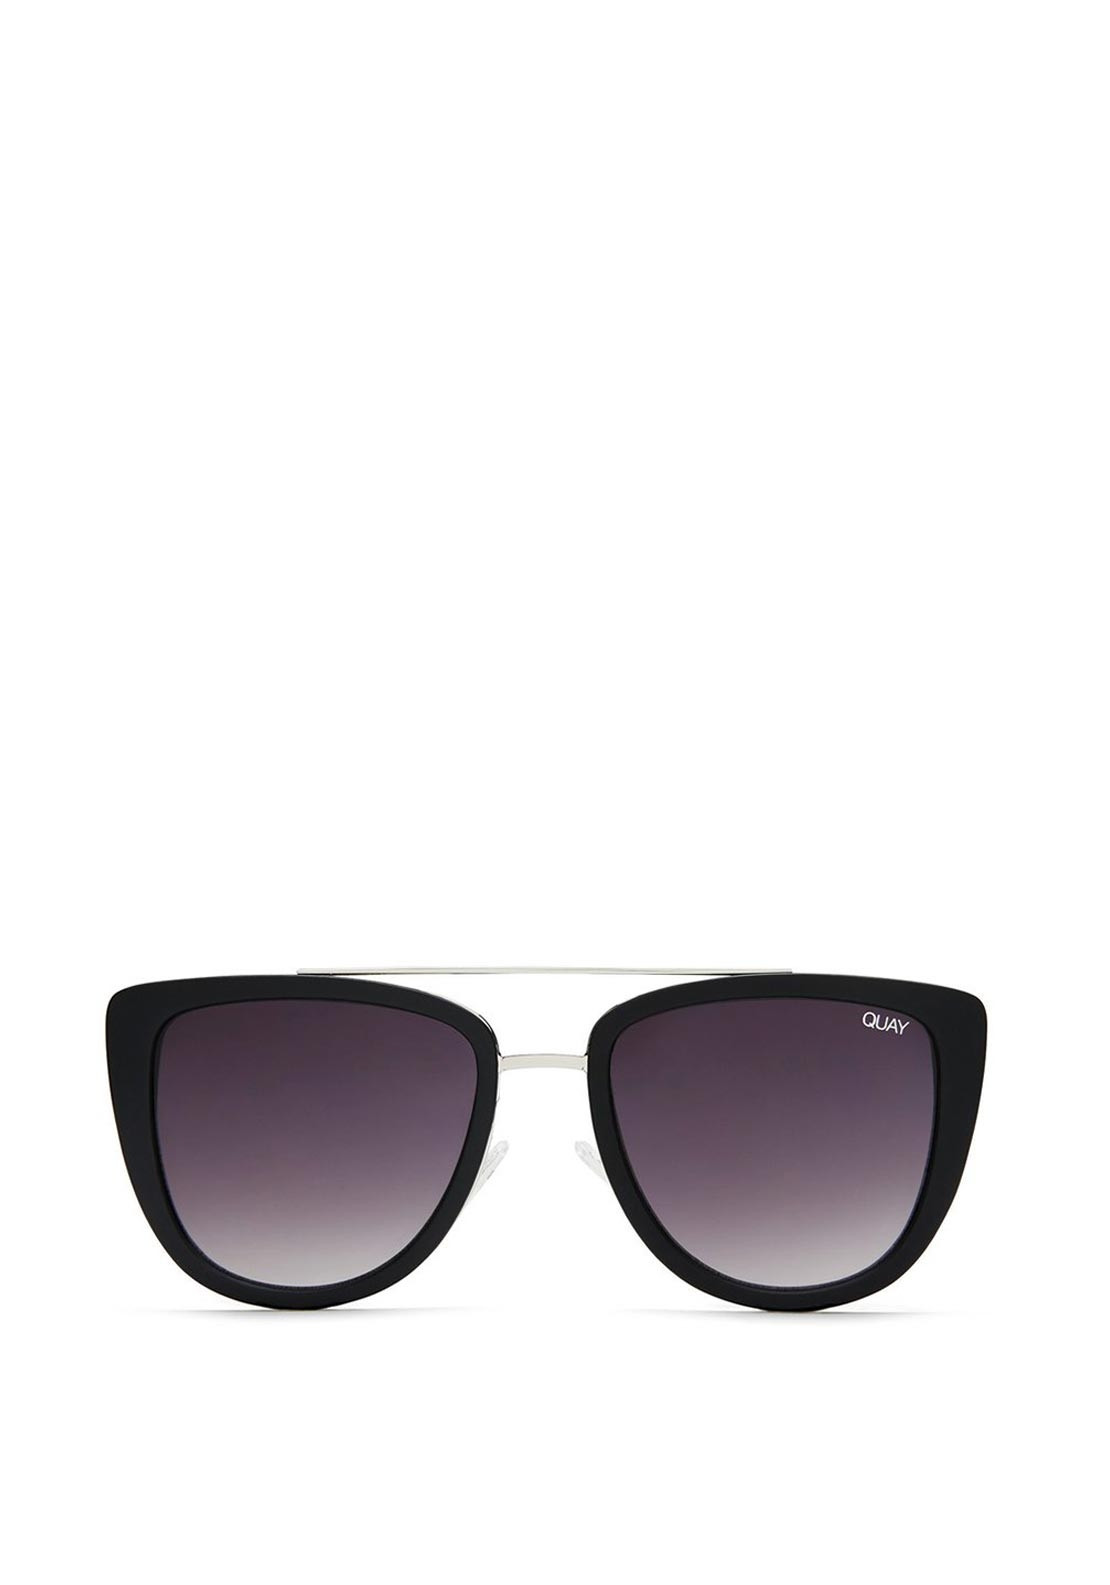 ee1c31a09b19 Quay Australia French Kiss Sunglasses, Black. Be the first to review this  product